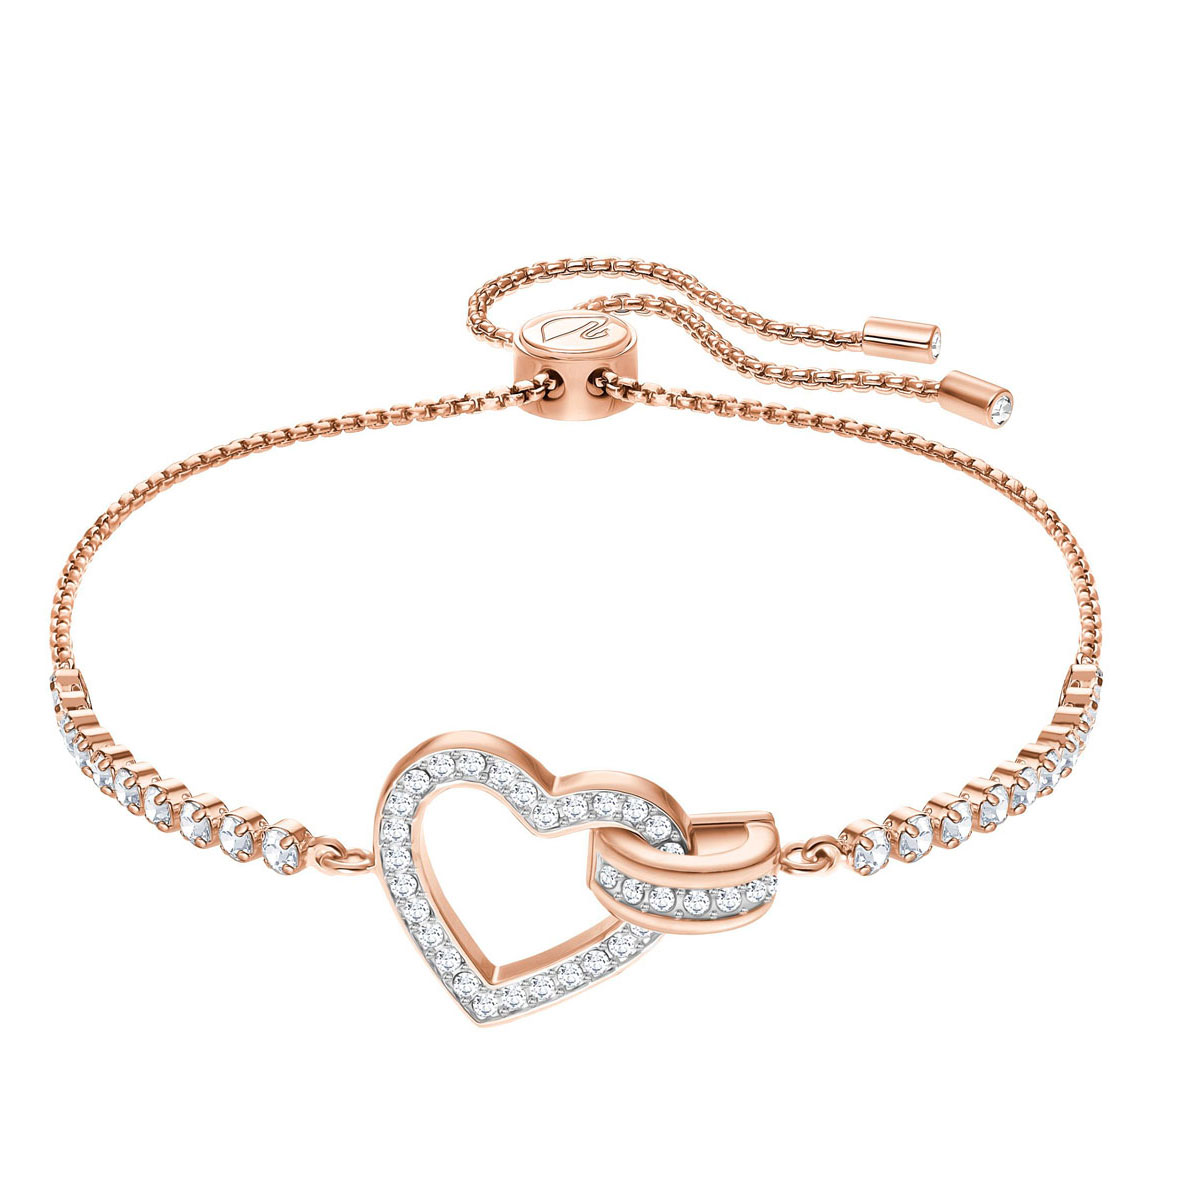 Swarovski Lovely Bracelet, White, Rose Gold